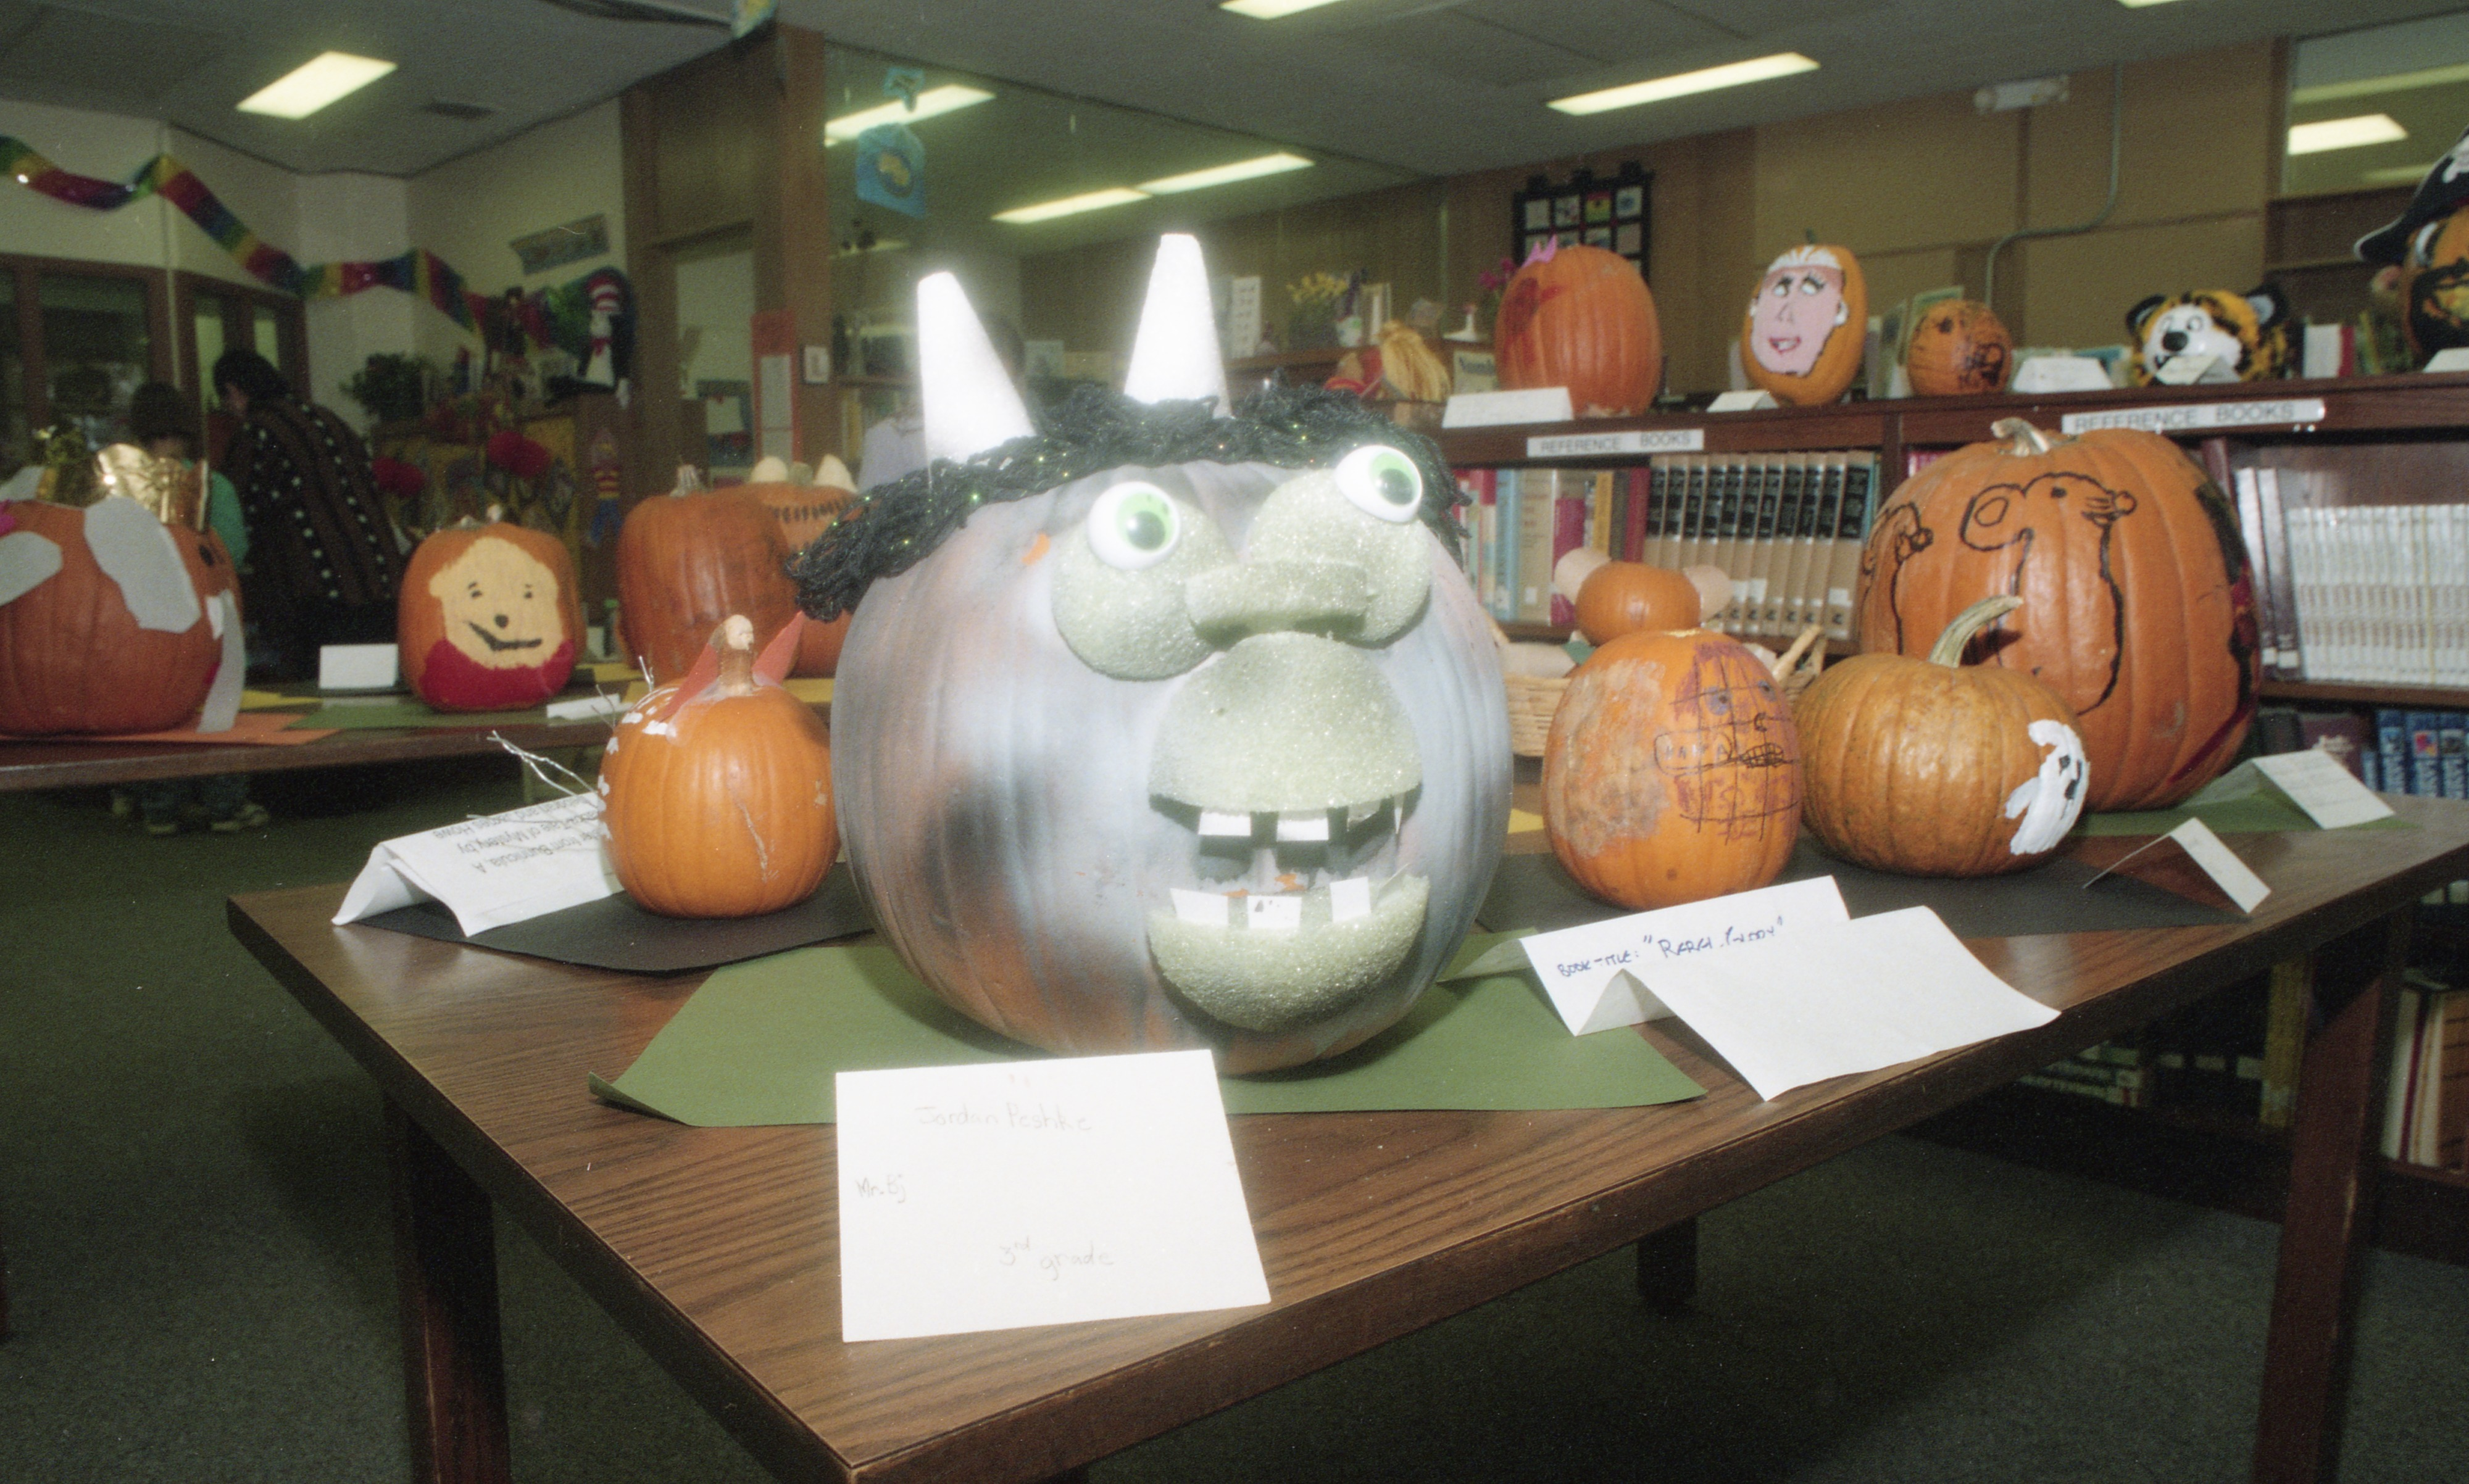 Character Pumpkin Display At Wines Elementary School, October 1997 image